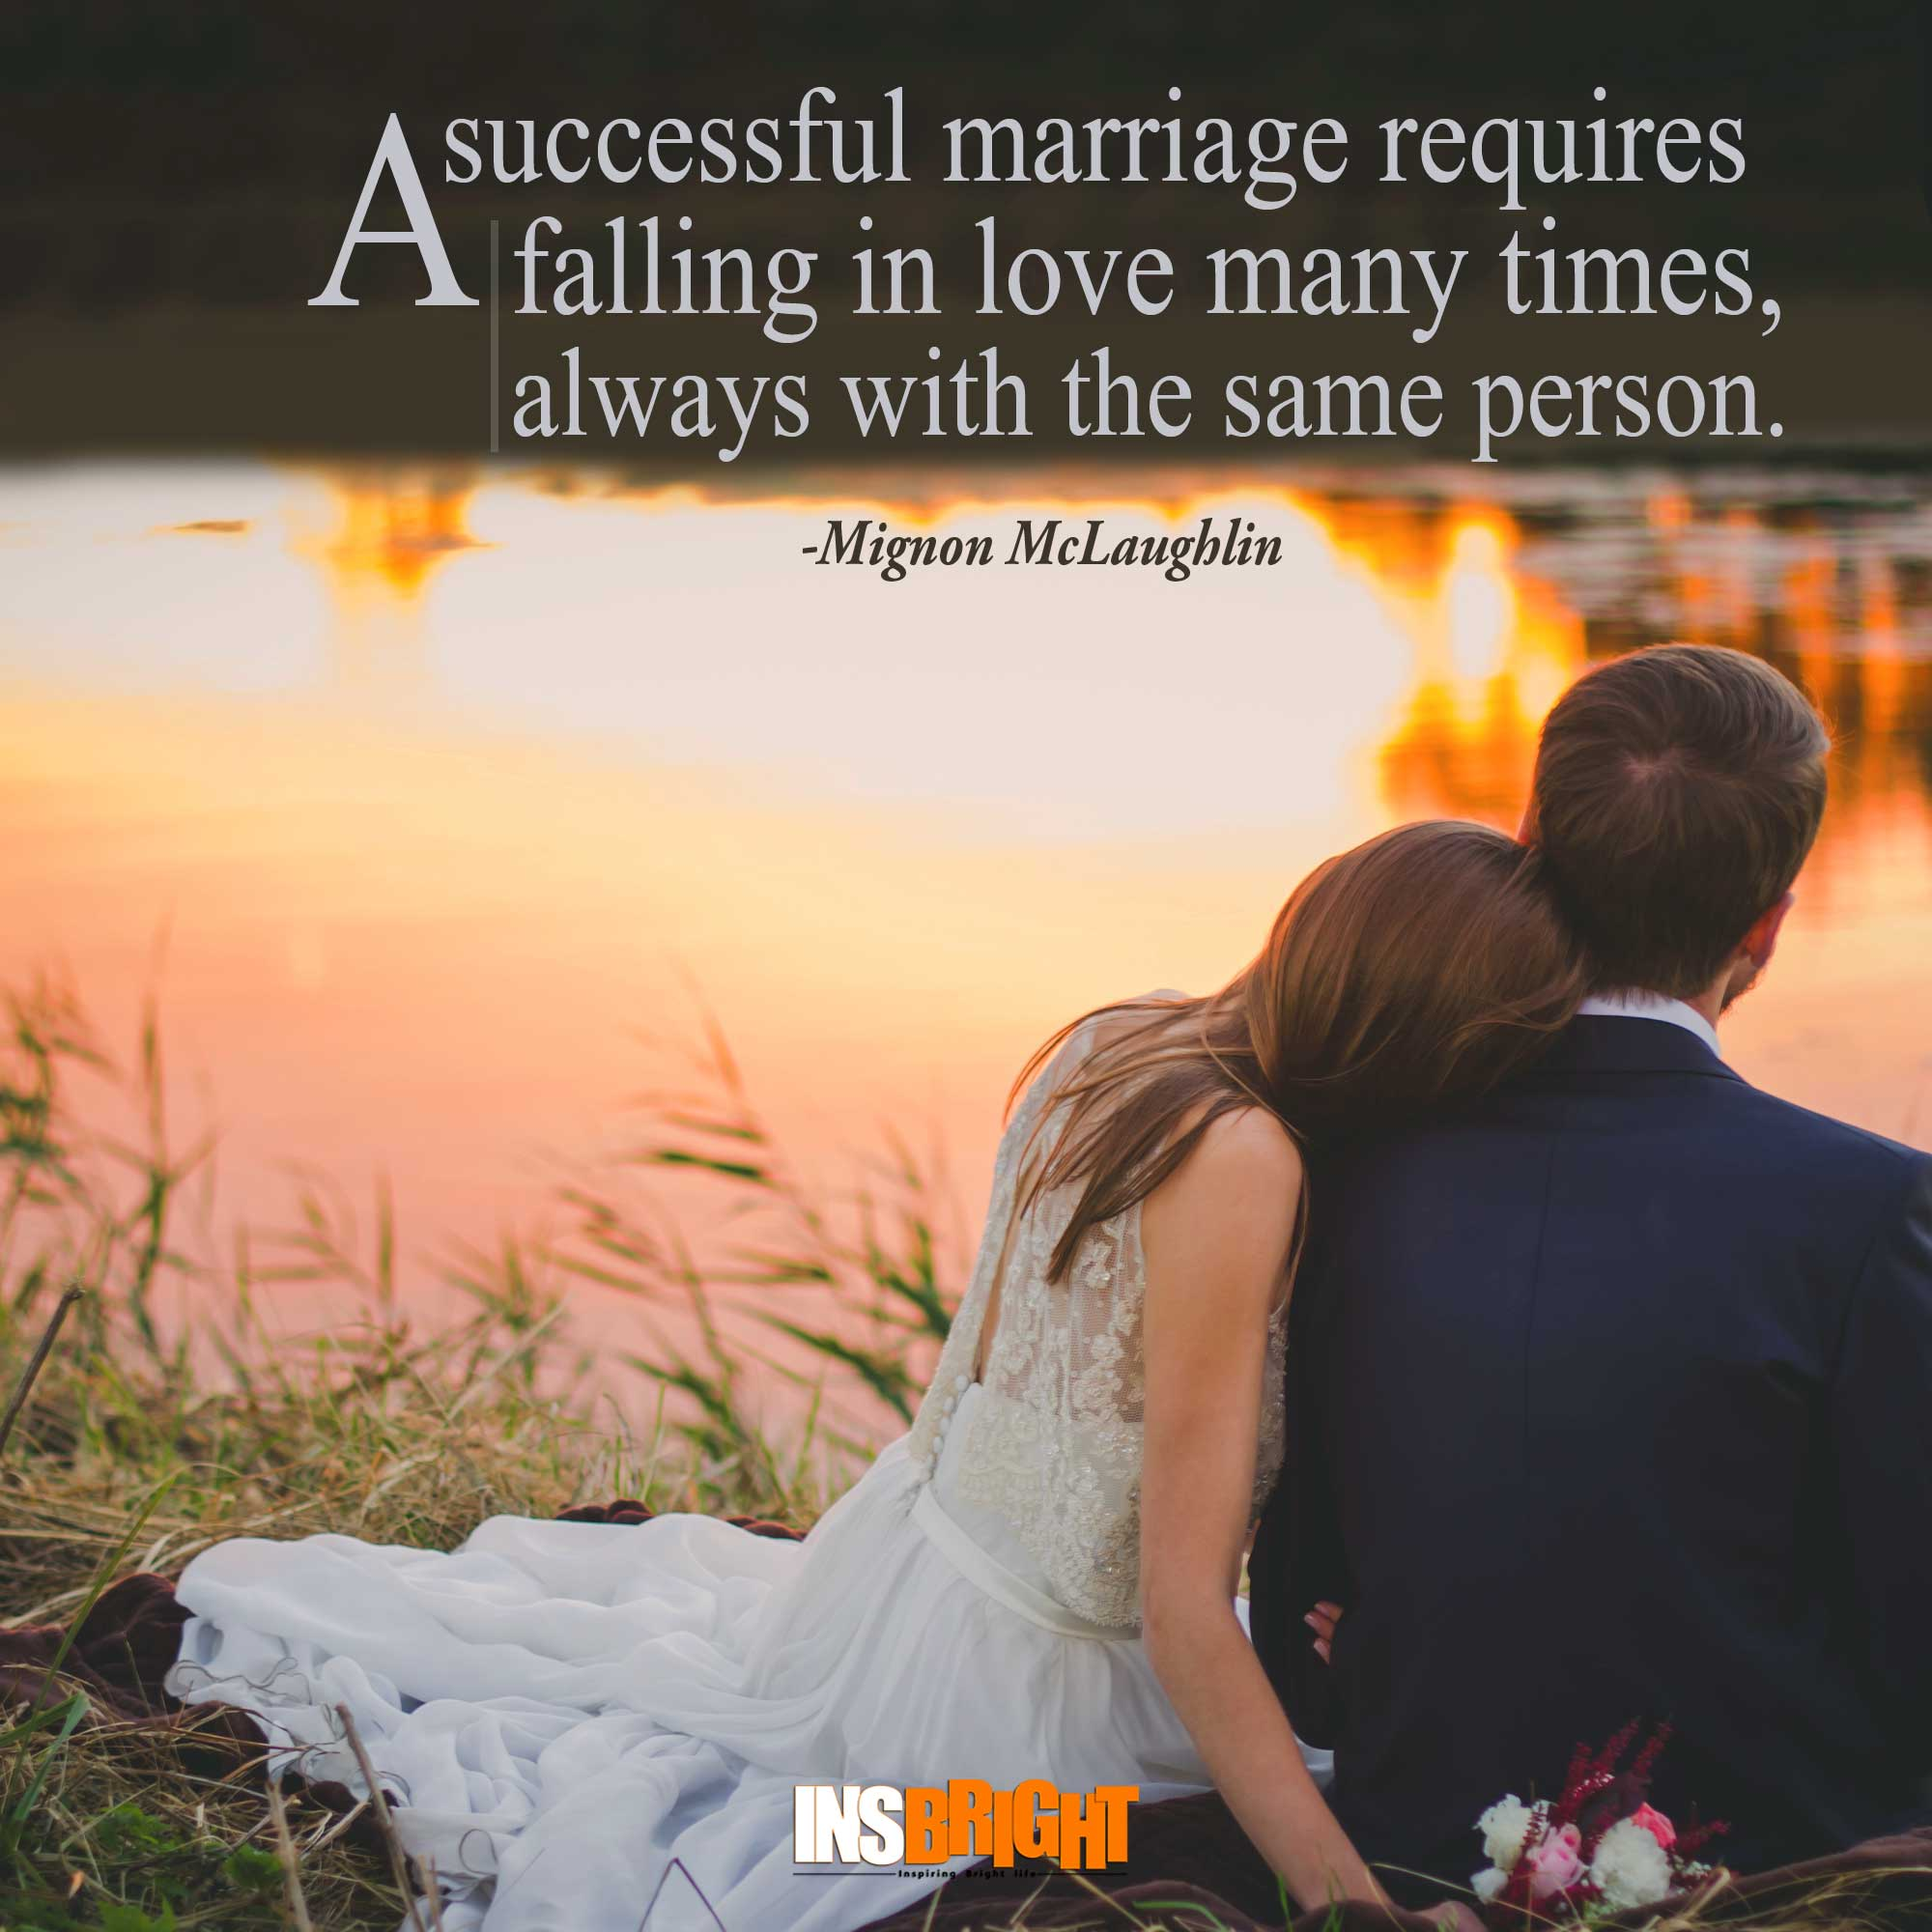 Mere christianity marriage quotes